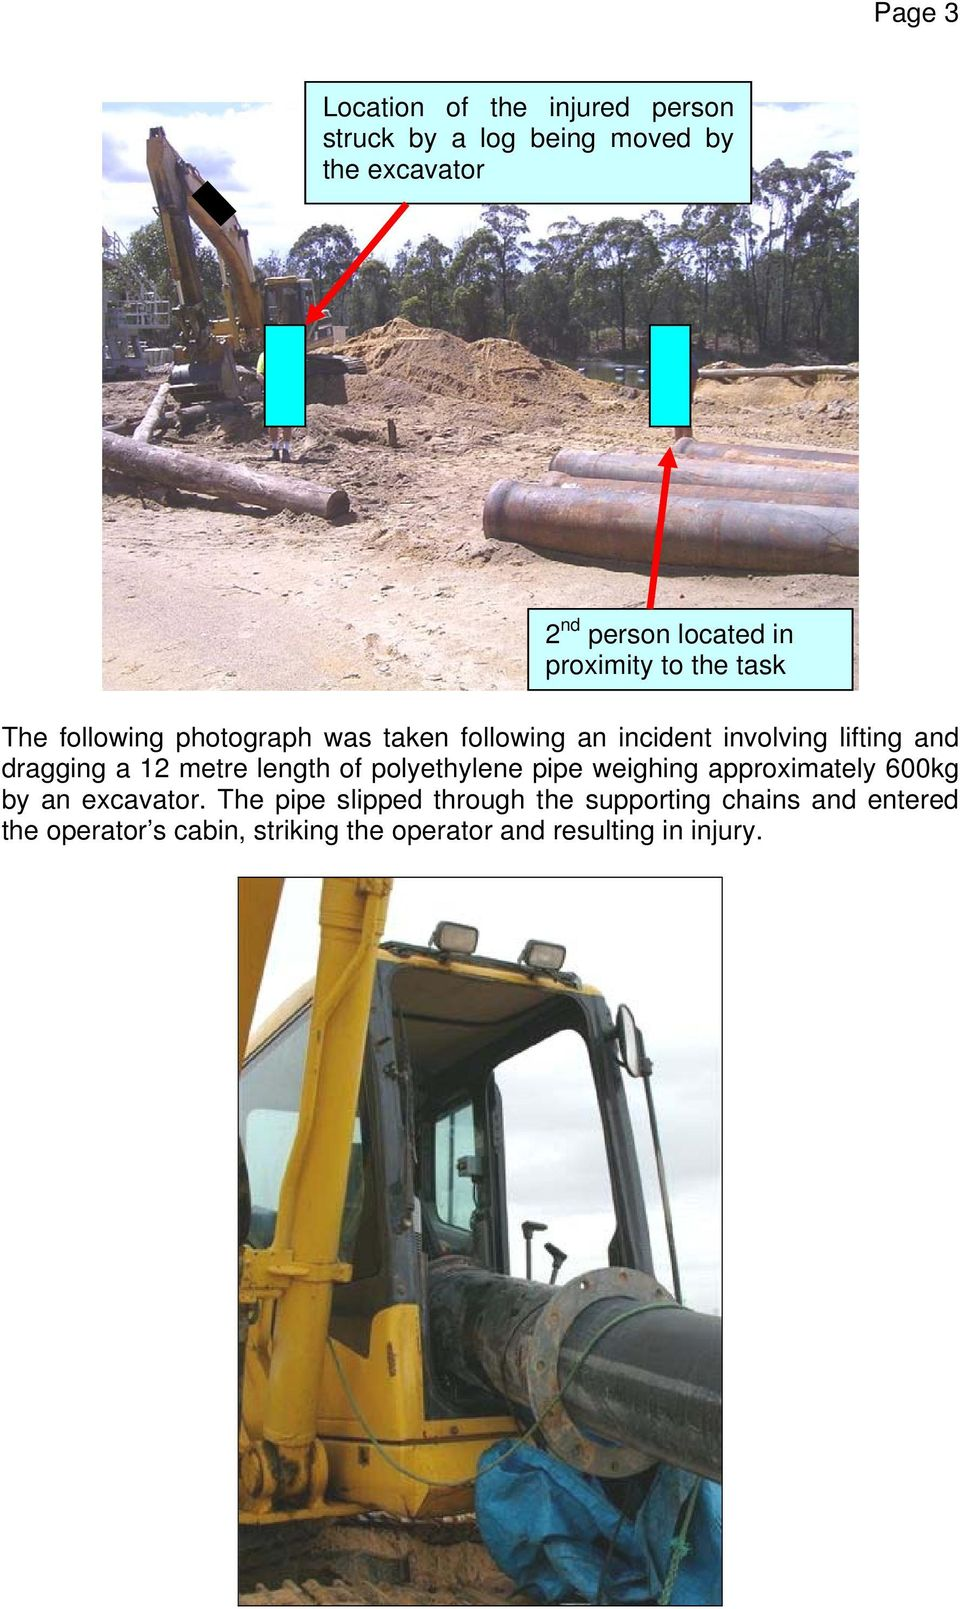 dragging a 12 metre length of polyethylene pipe weighing approximately 600kg by an excavator.